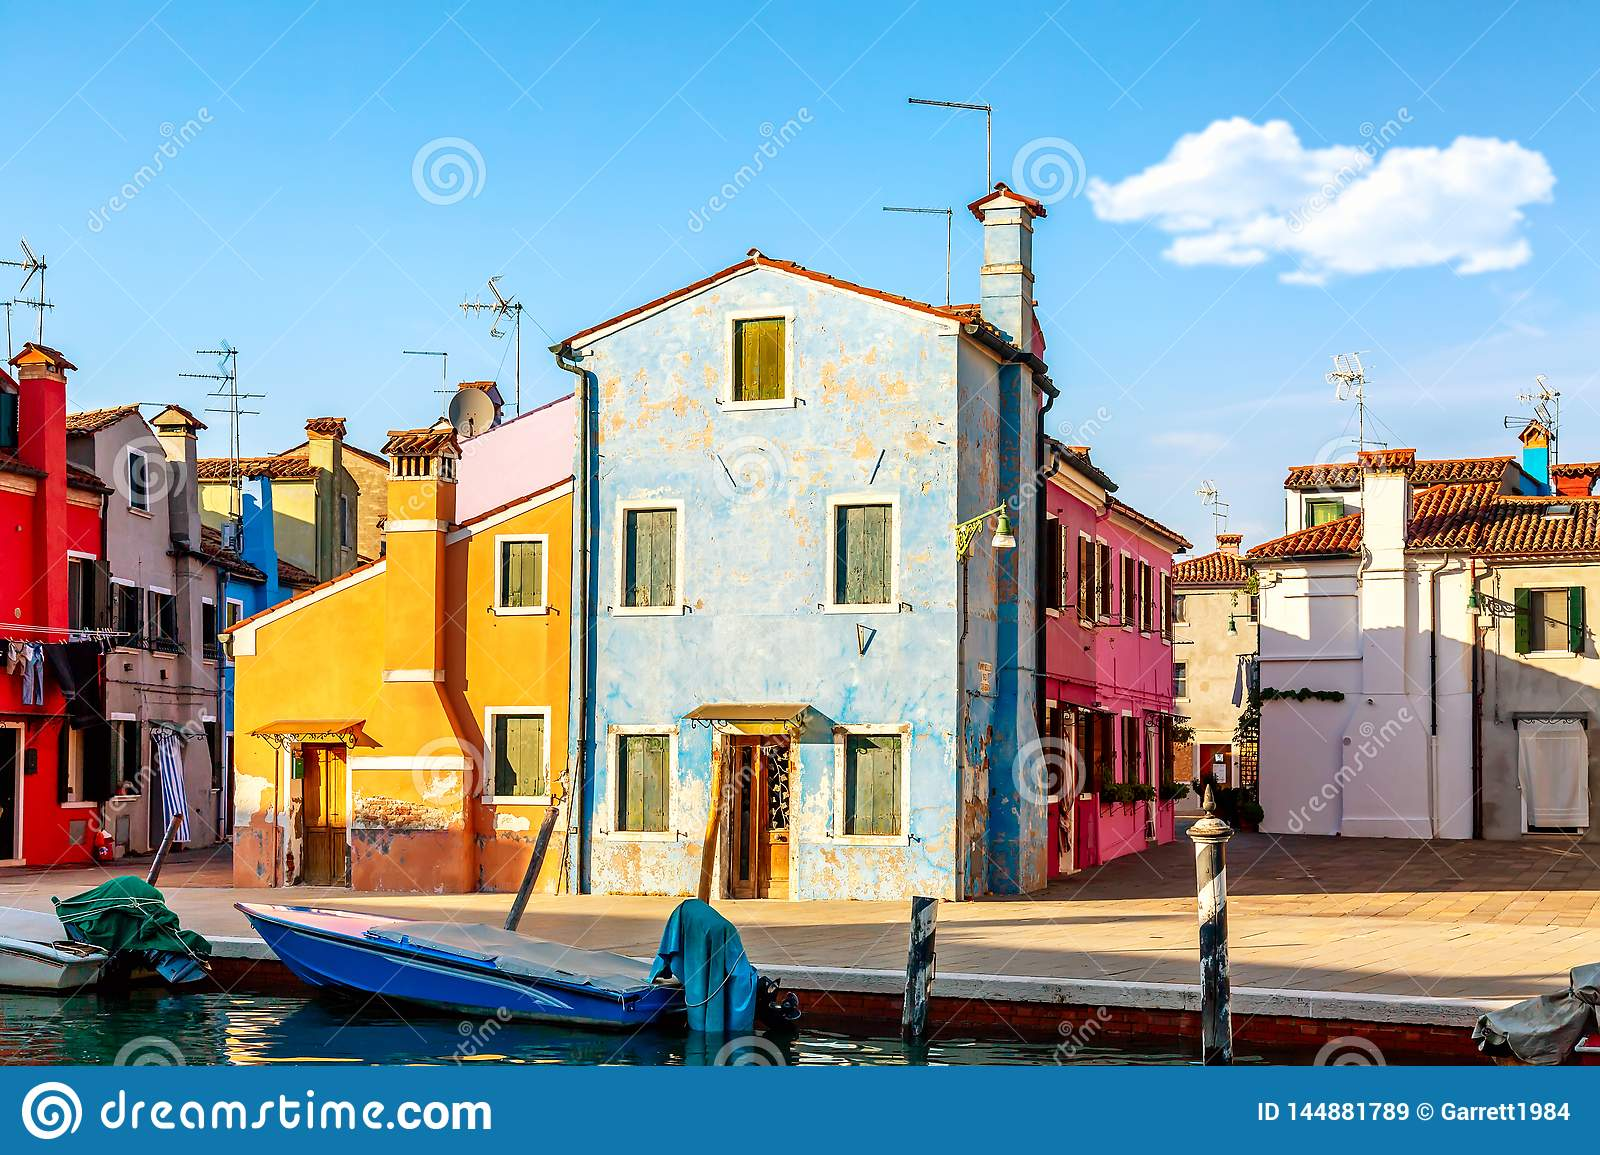 Colorful houses in Burano near Venice, Italy with boats and beautiful blue sky in summer. Famous tourist attraction in Venice